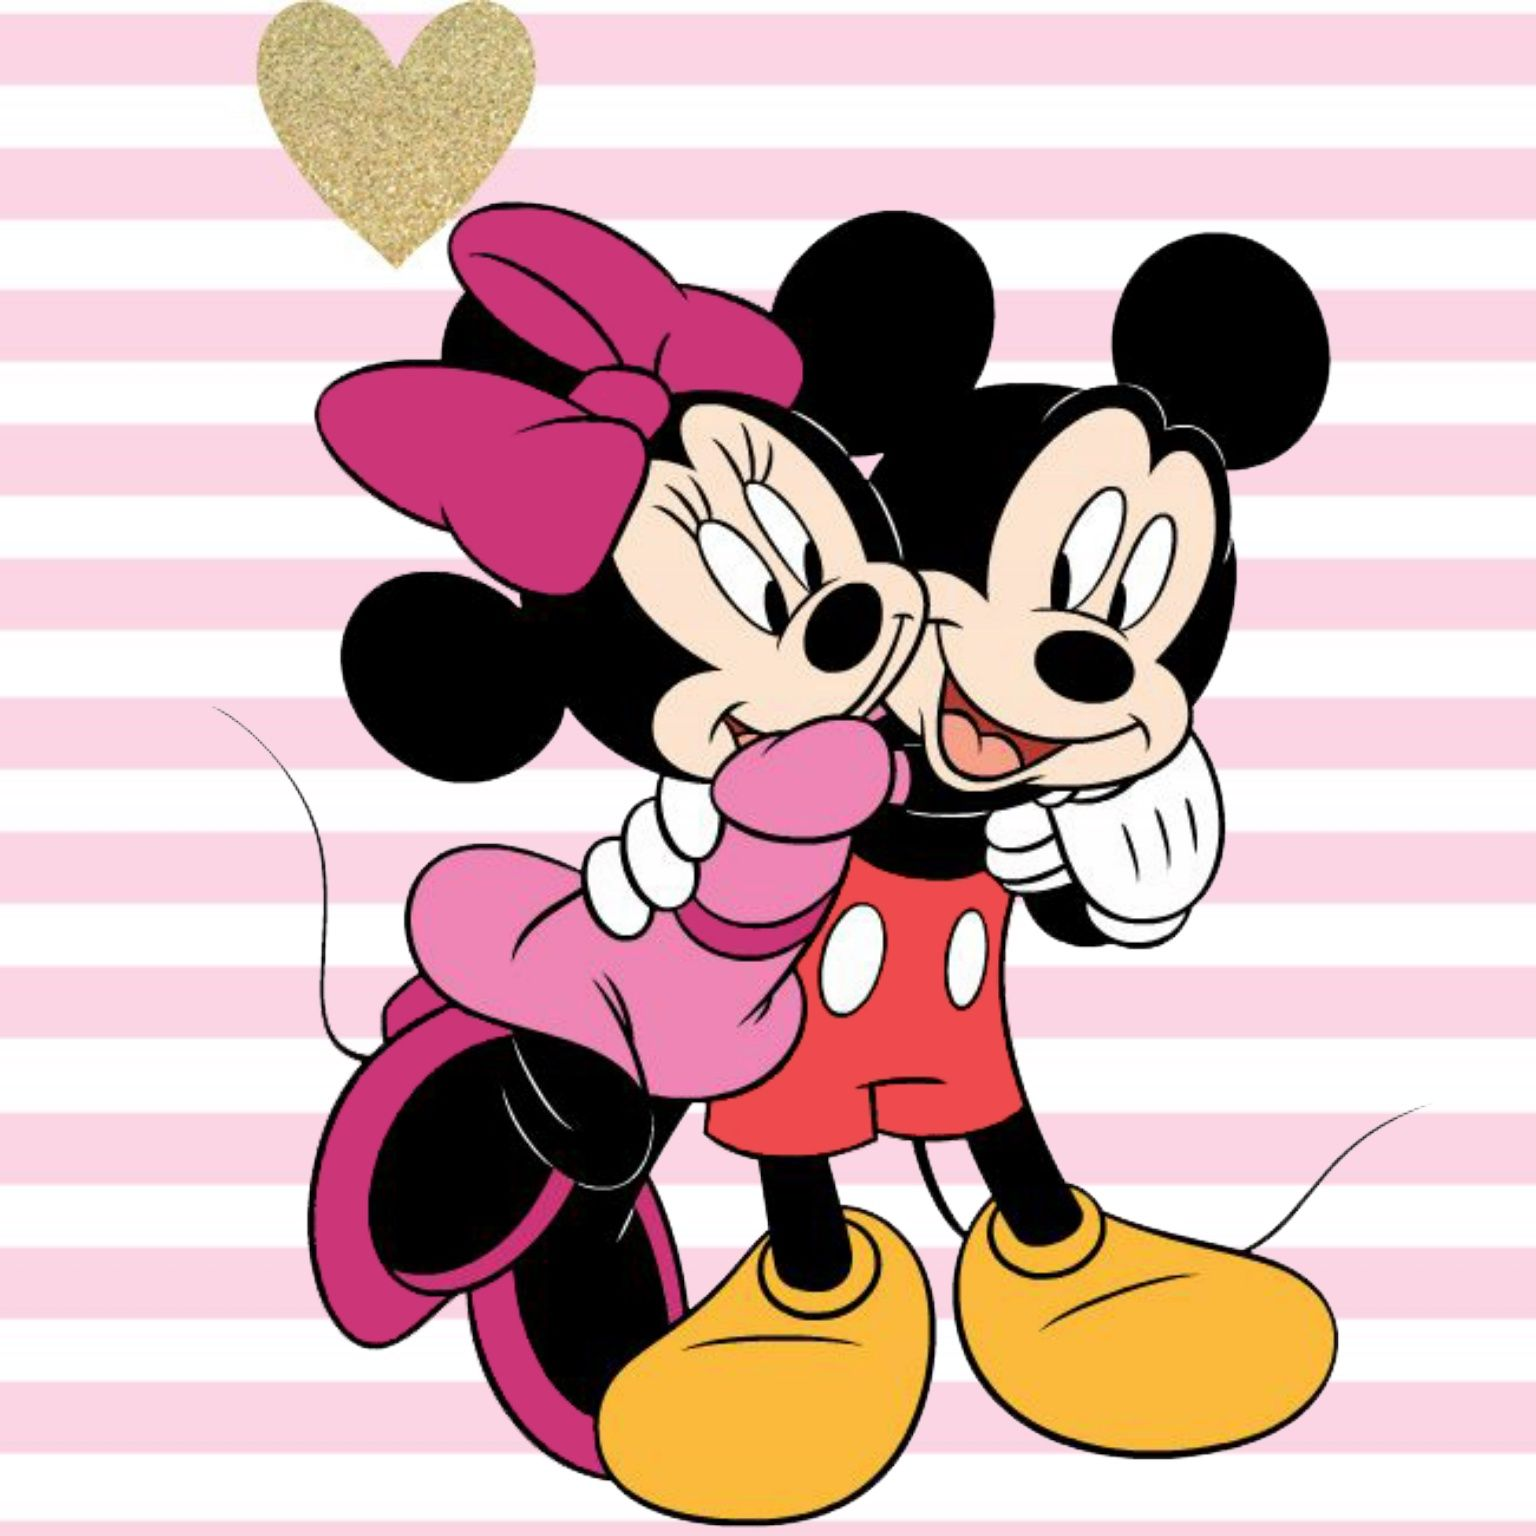 Hug clipart mickey mouse. Minnie giving a to